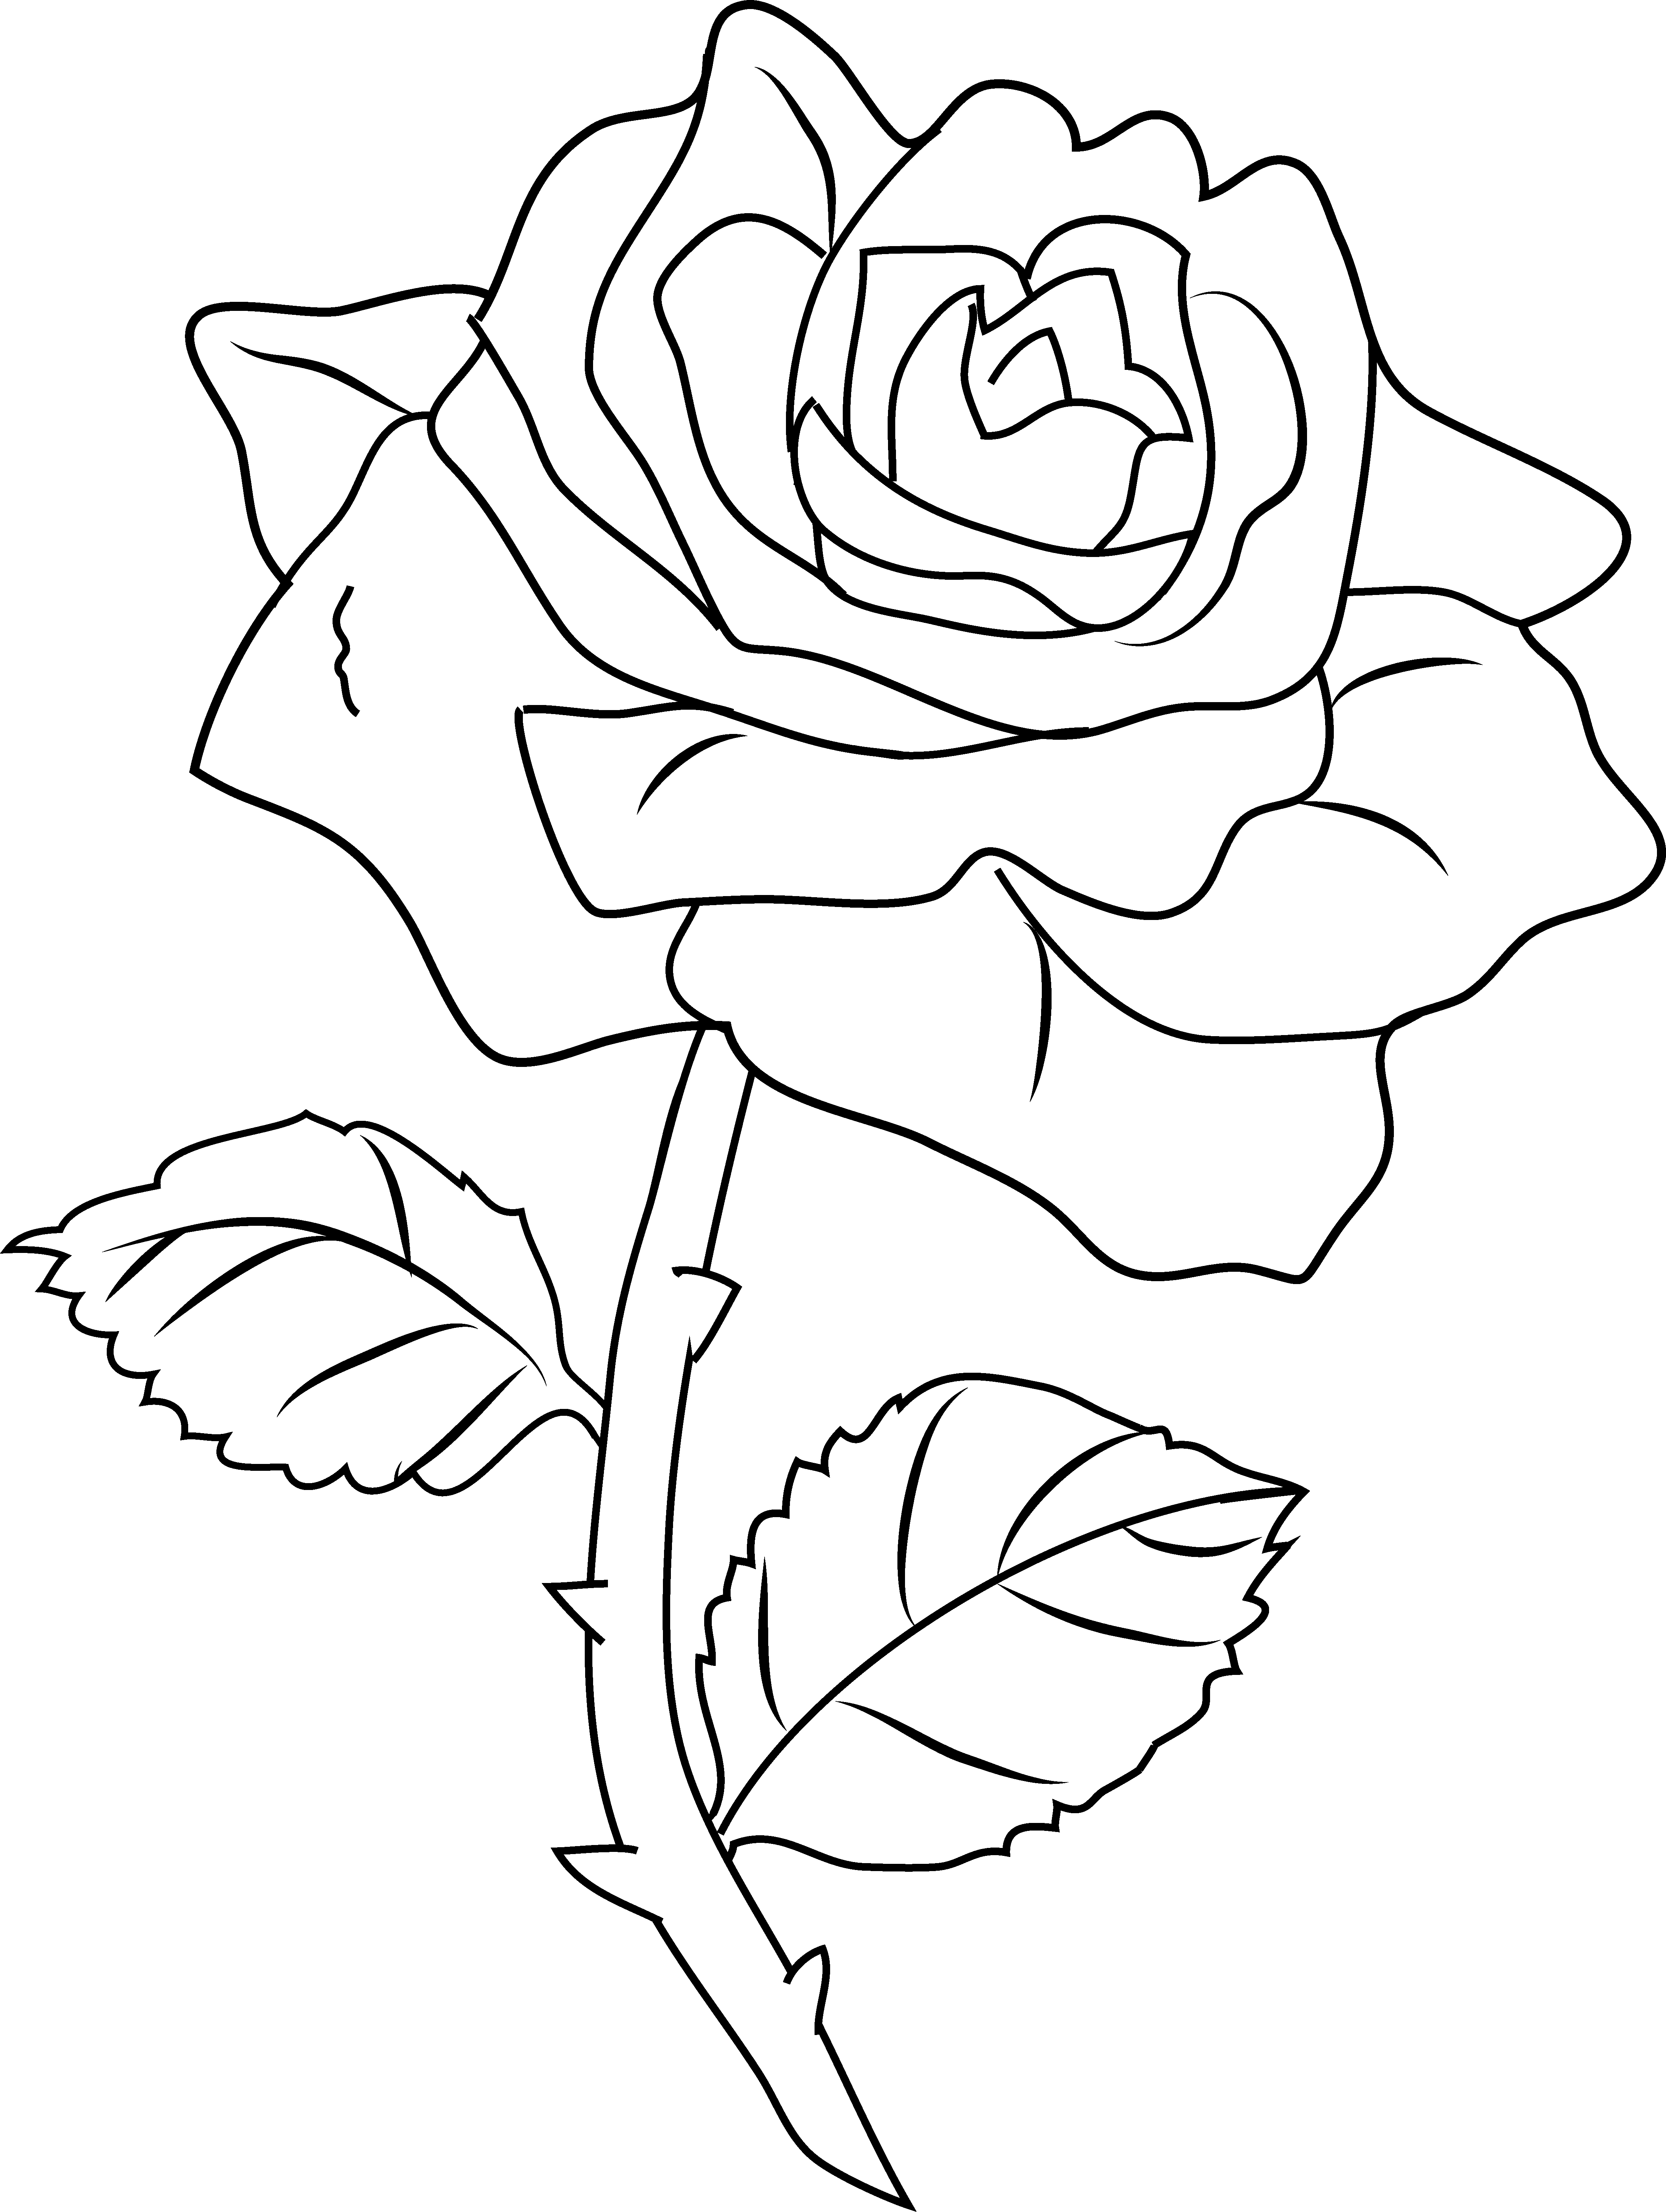 Rose color clipart 20 free Cliparts | Download images on ...